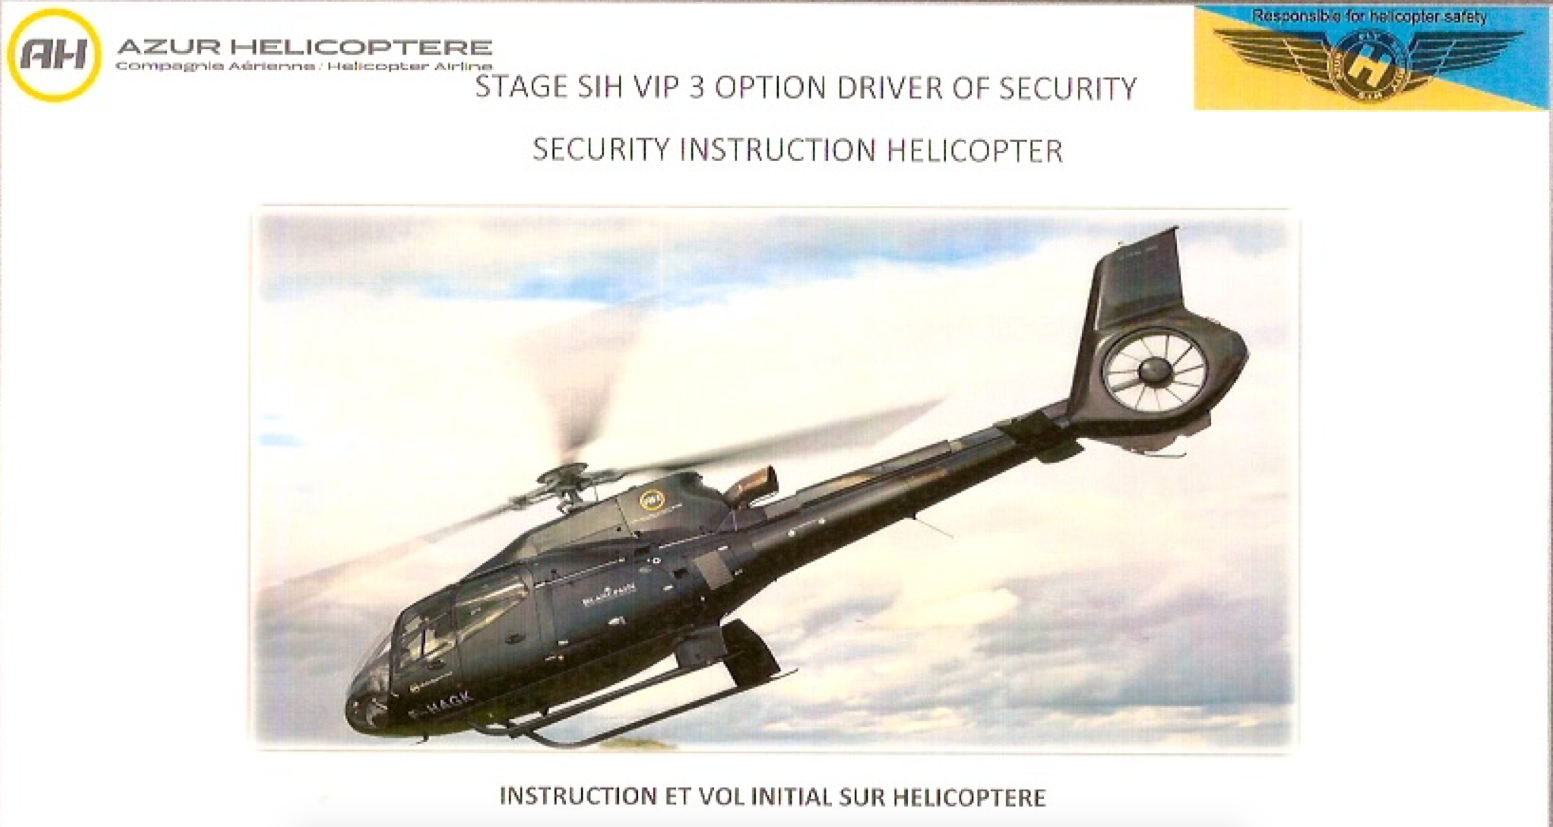 Security Instruction Helicopter